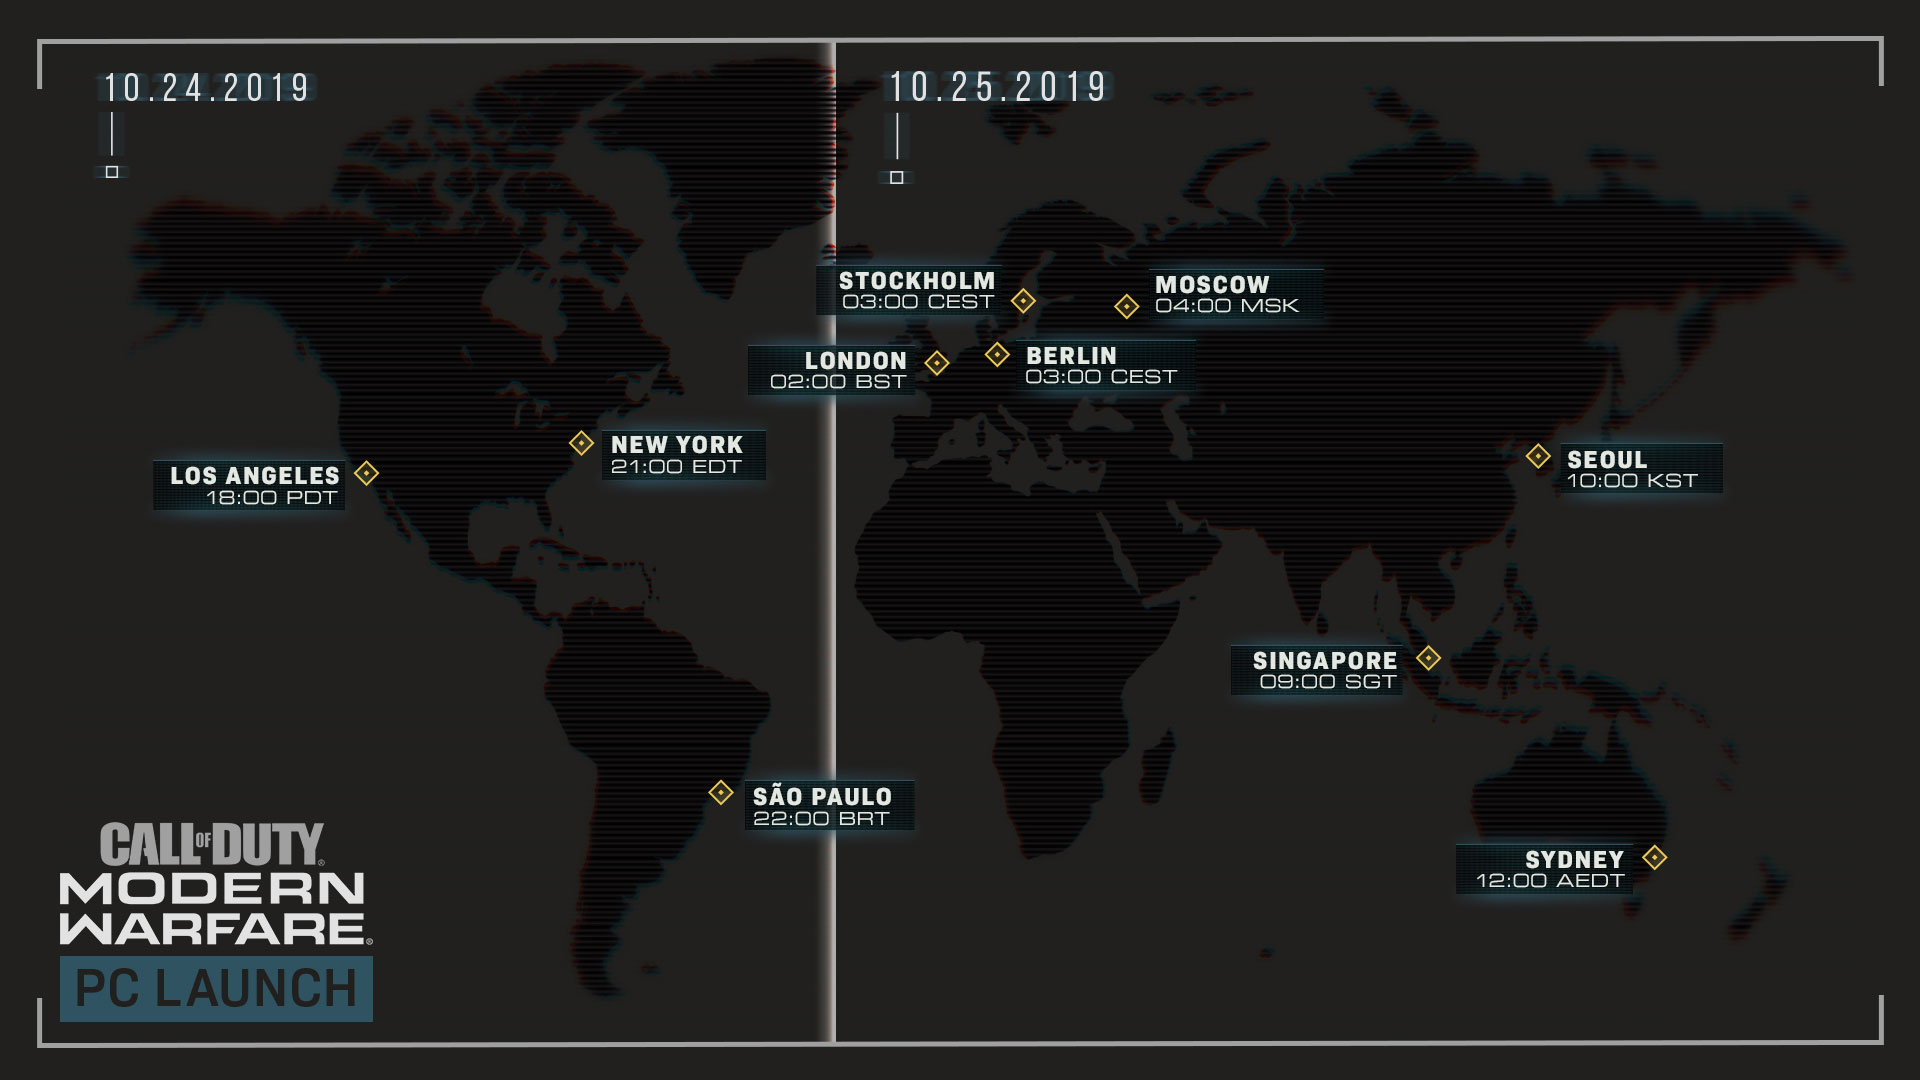 IMAGE(https://blog.activision.com/content/dam/atvi/activision/atvi-touchui/blog/callofduty/body/MW-PC-LAUNCH-MAP.jpg)